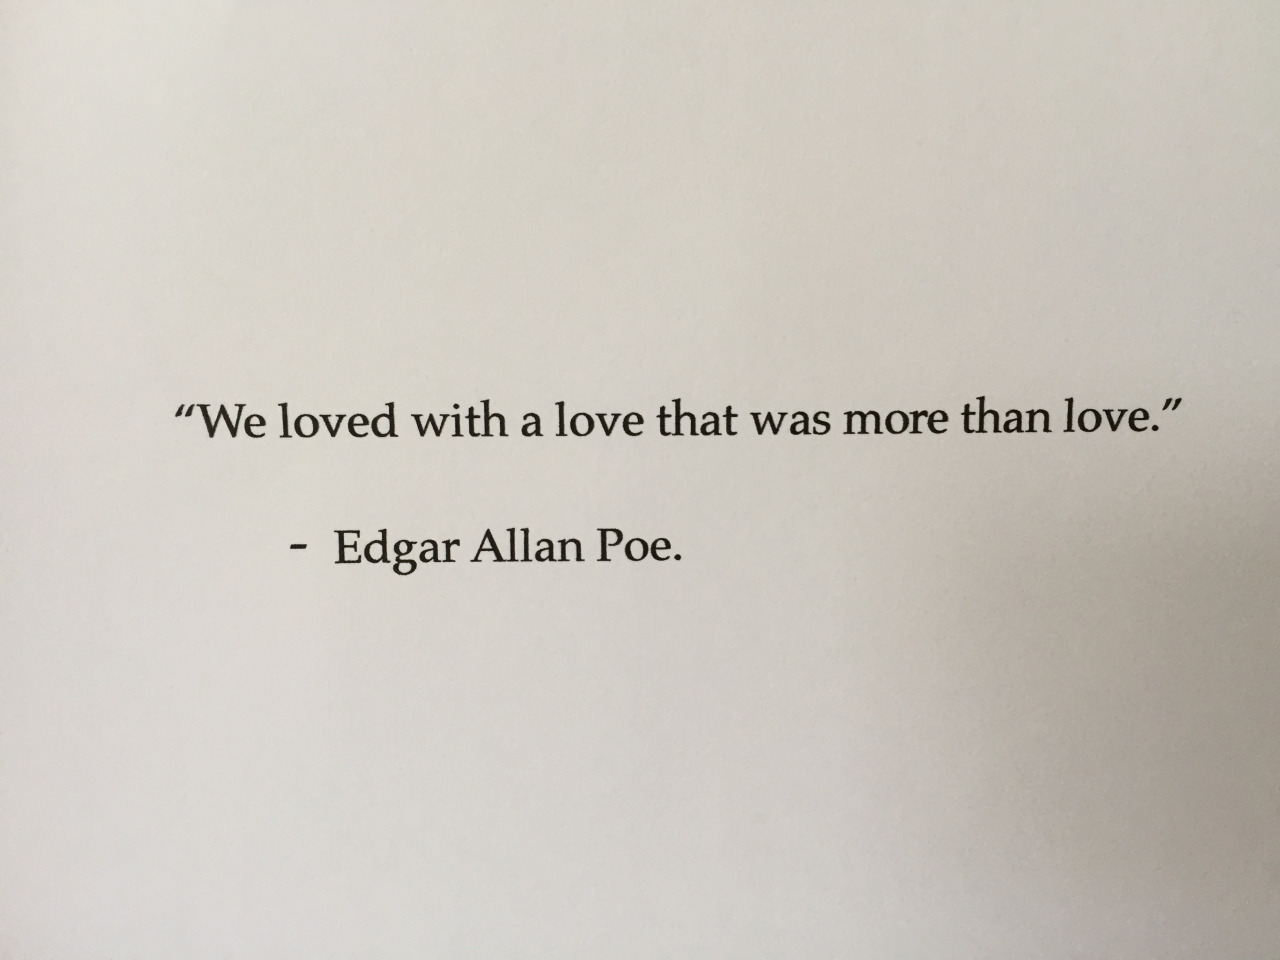 aesthetic, book, books, edgar allan poe, love, poe, poem, poetry, quote, quotes